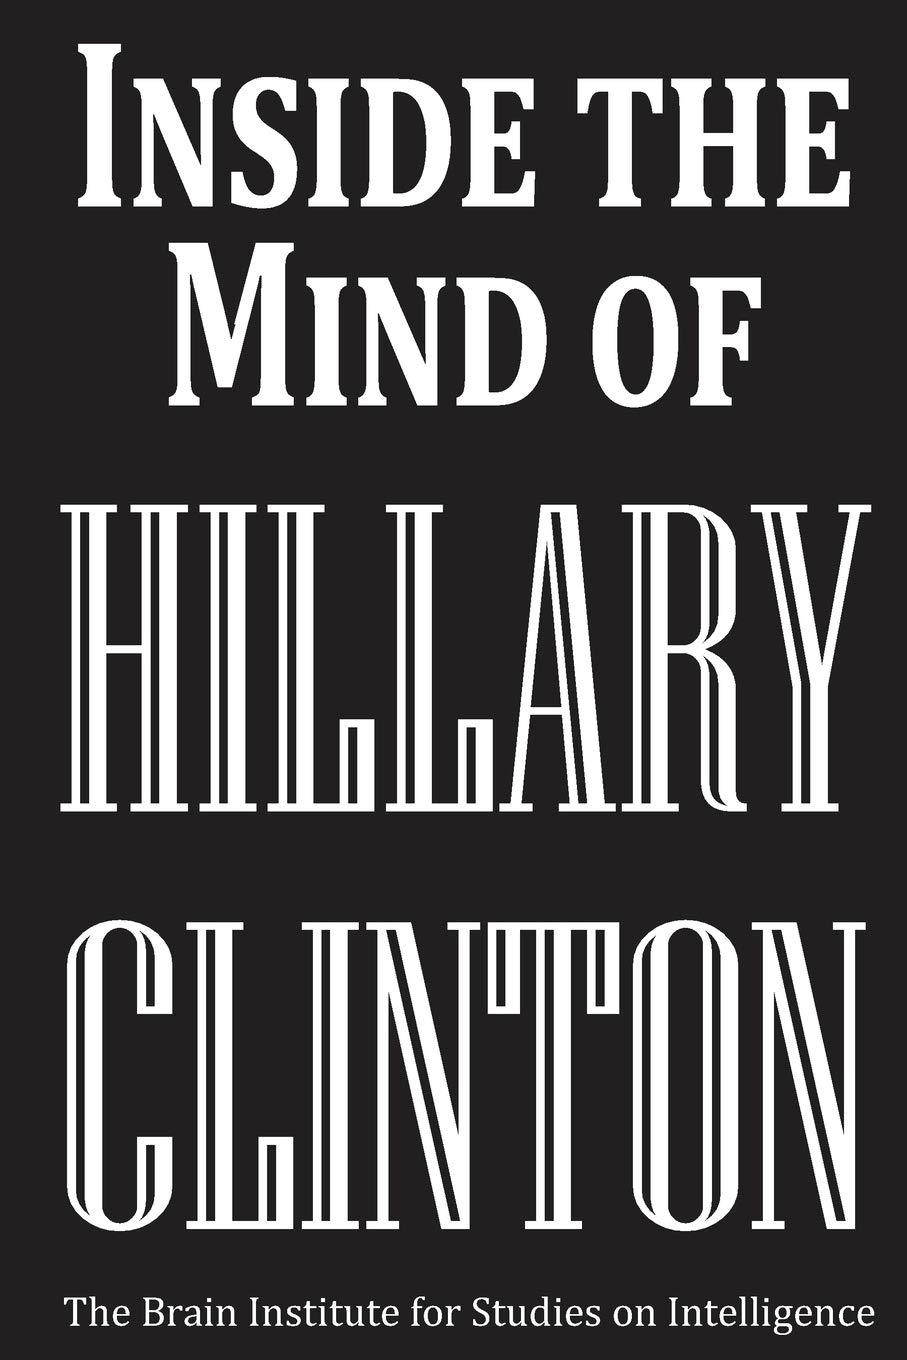 Inside the Mind of Hillary Clinton